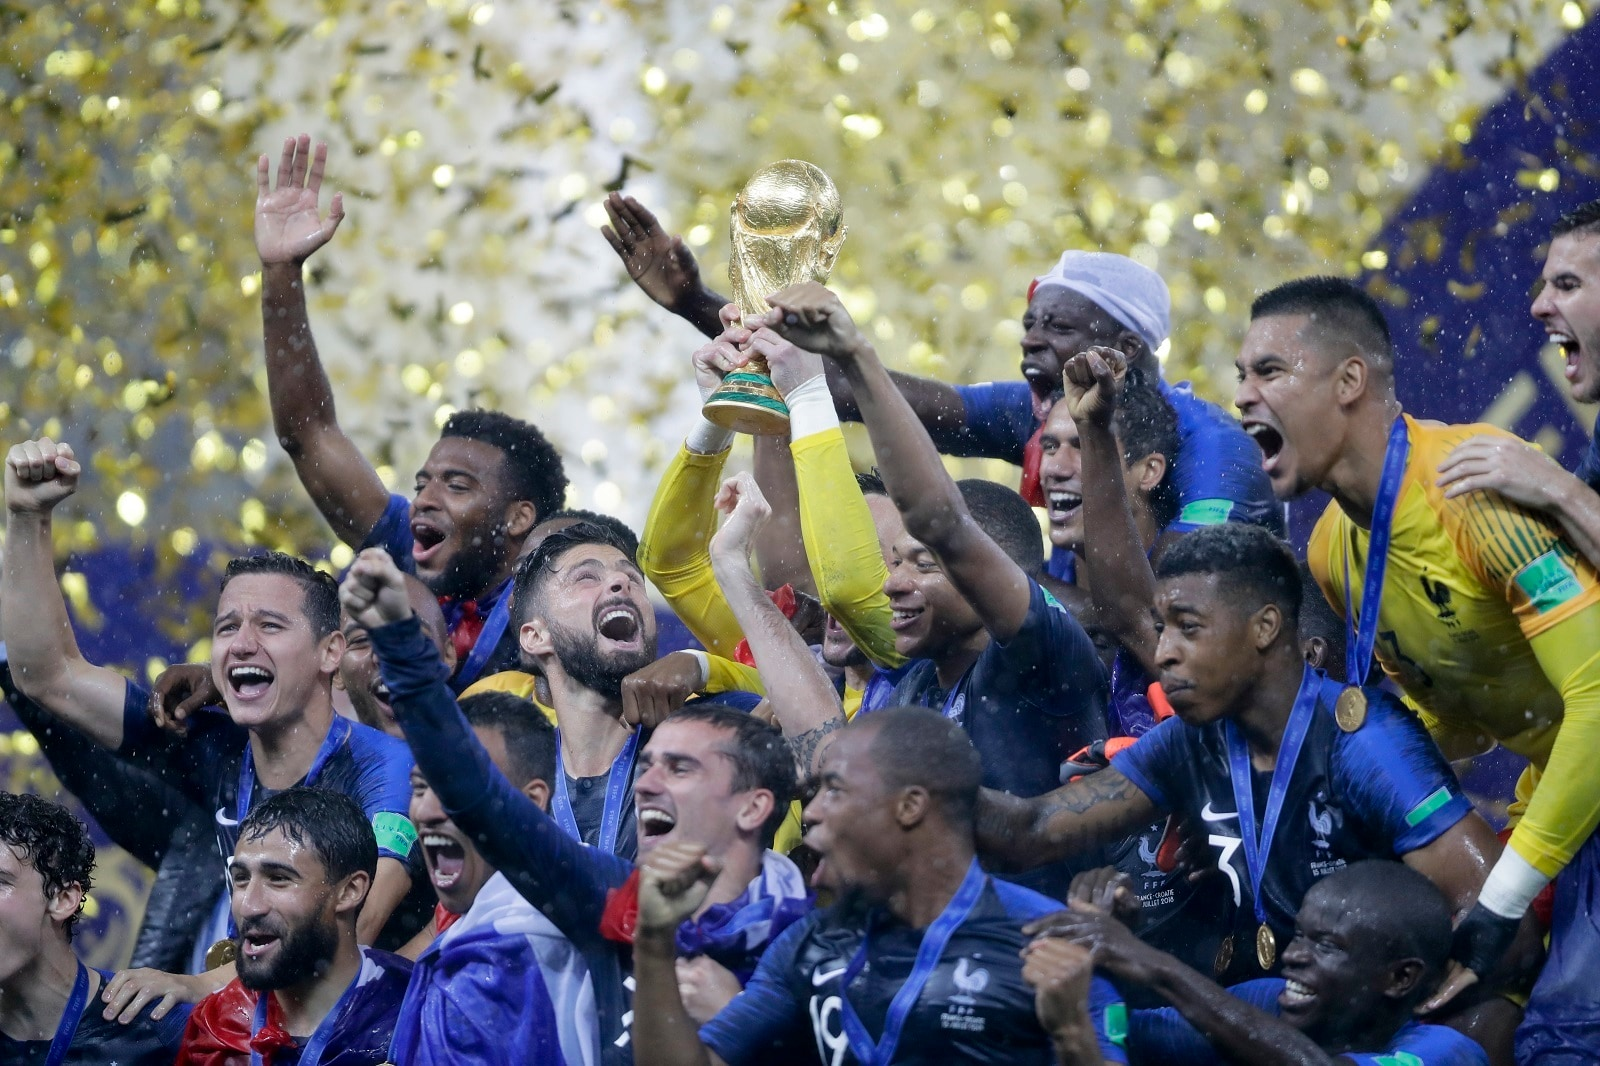 French players celebrare with the trophy after the final match between France and Croatia at the 2018 soccer World Cup in the Luzhniki Stadium in Moscow, Russia, Sunday, July 15, 2018. (AP Photo/Natacha Pisarenko)